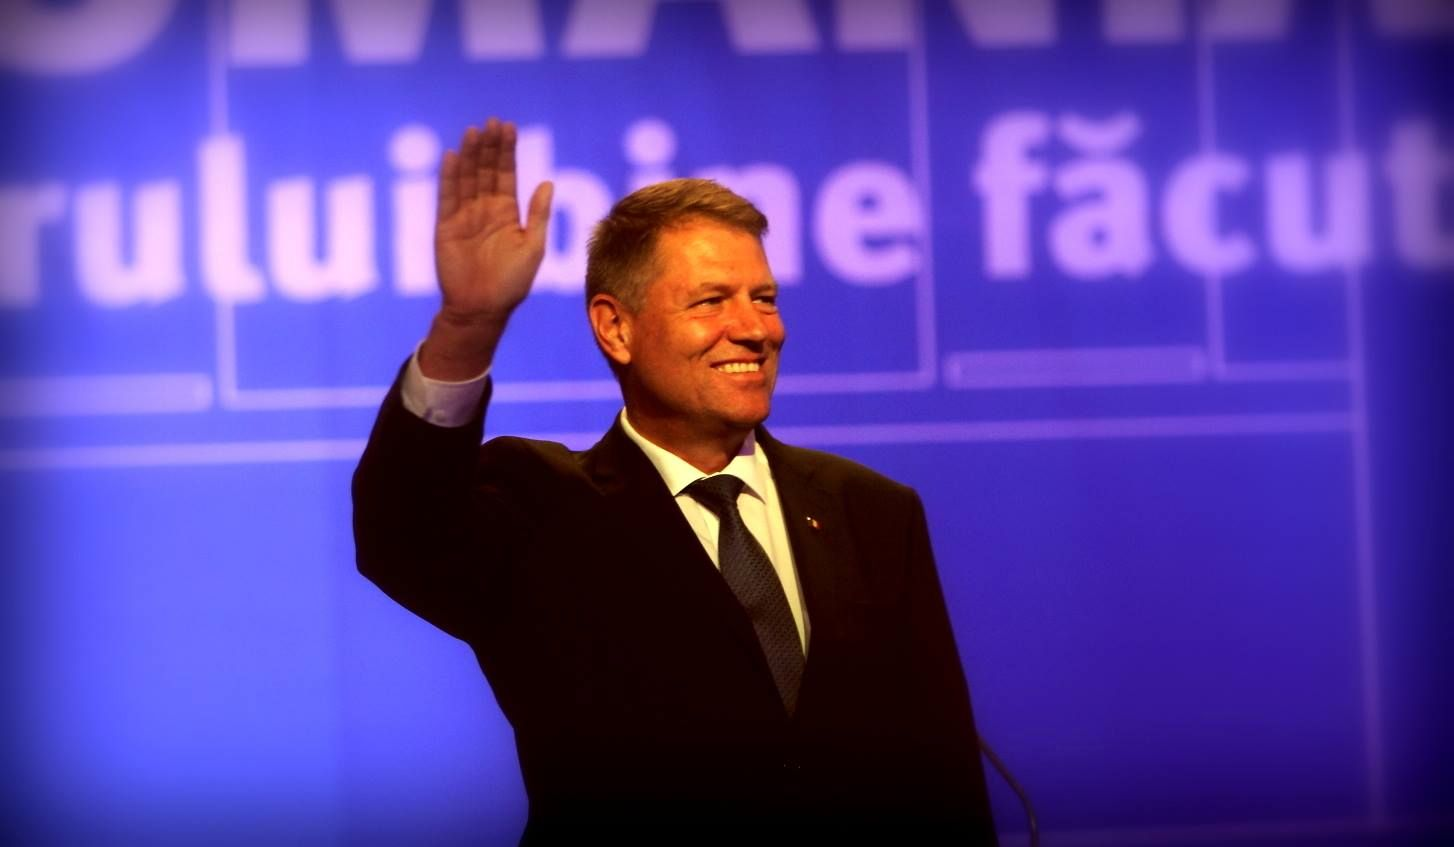 Romania's Iohannis seeks to revitalize sluggish relations with France